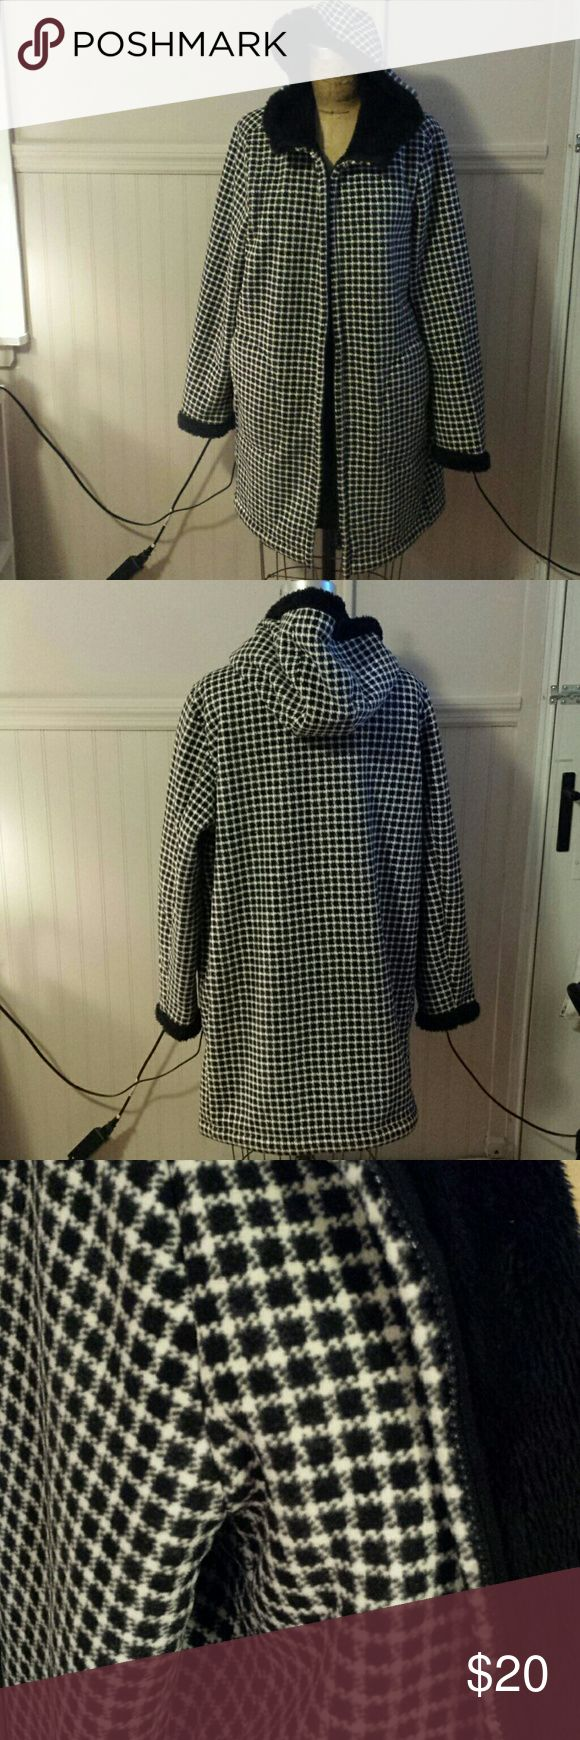 SALE Uniqlo Coat -Uniqlo black and white plaid coat lined with fur; -Used a few times, it is in excellent conditions; -Size XL, I am a S and wore it oversized. Jackets & Coats